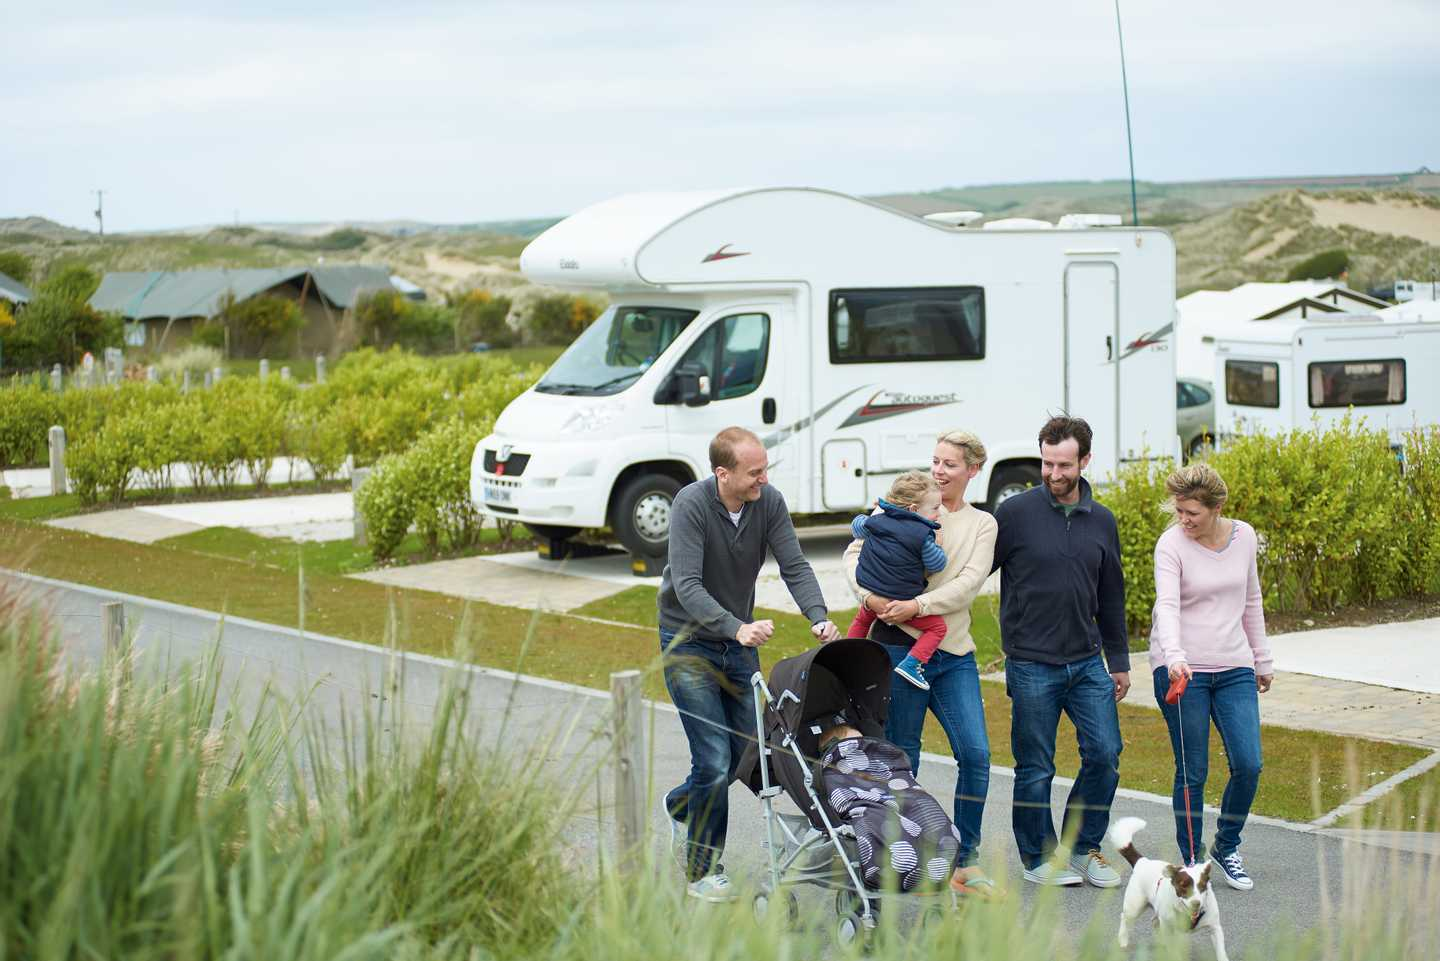 A family walking in the touring and camping area